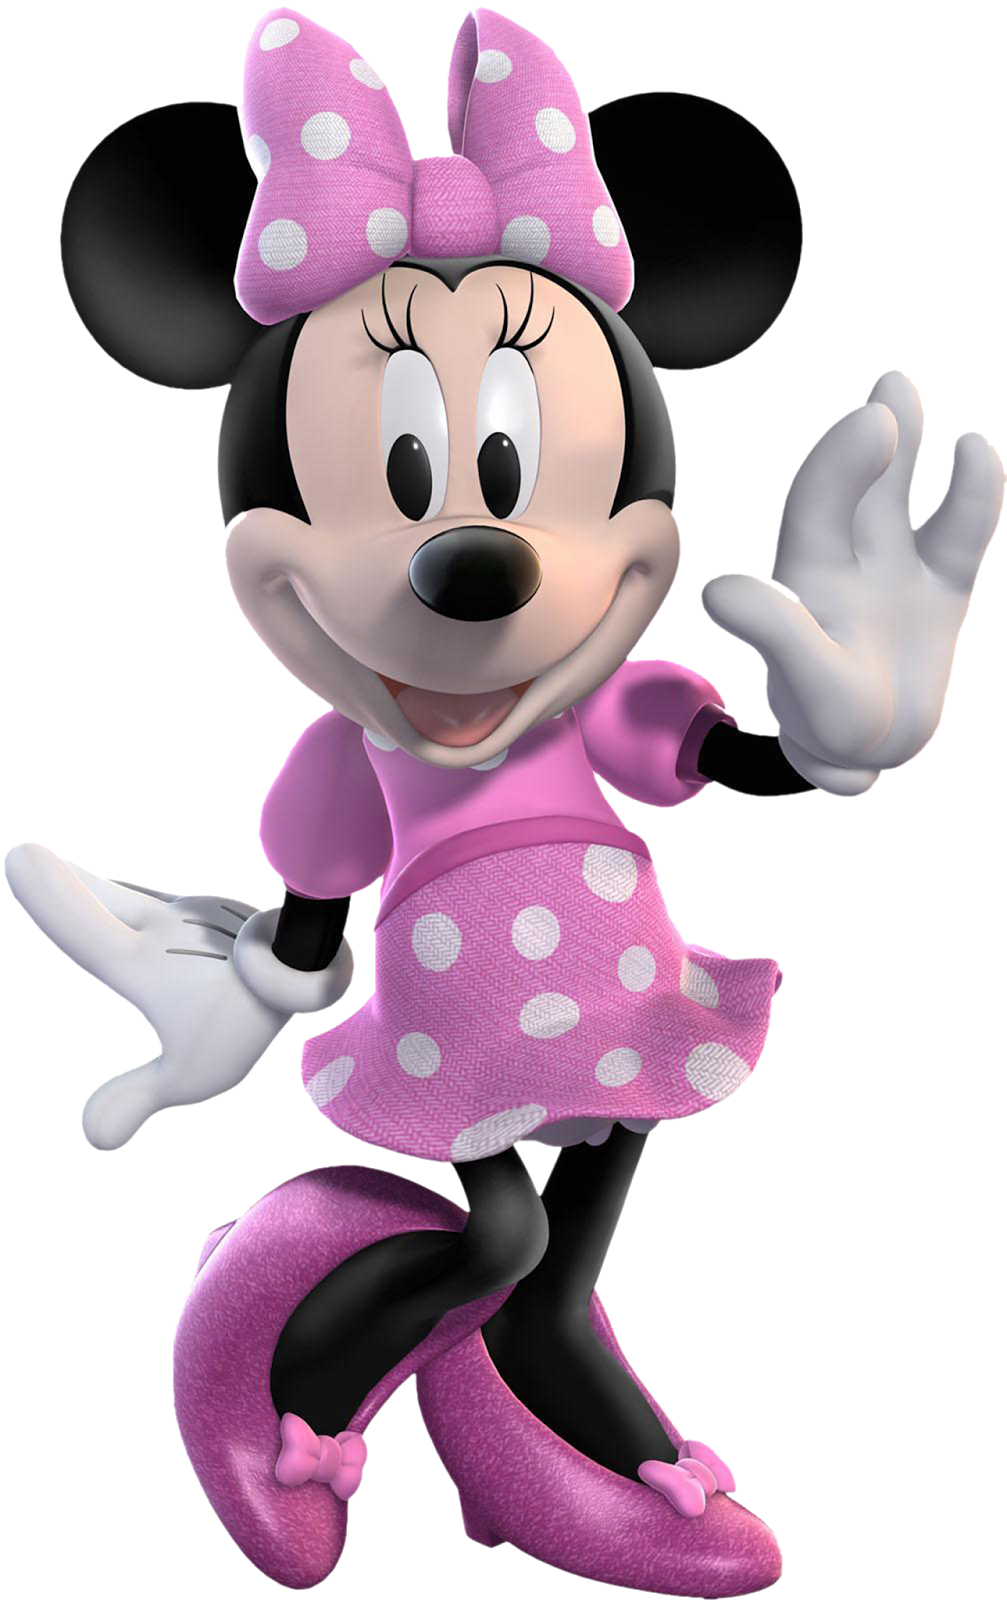 Pink minnie mouse png. Transparent images all free